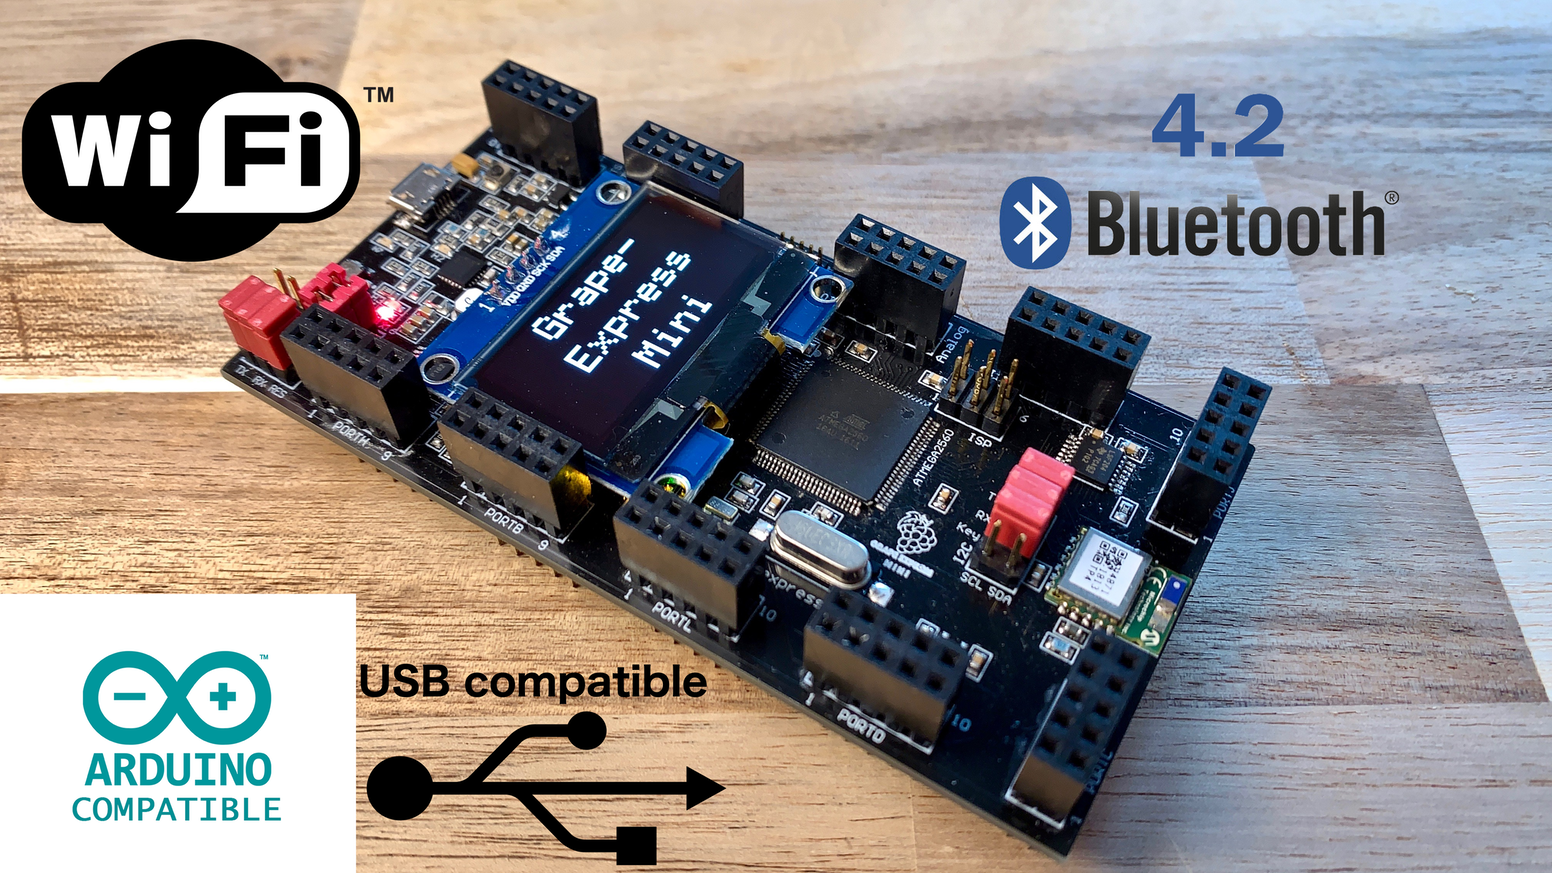 The powerful Grape-Express Mini development board with Bluetooth 4.2, Wifi, OLED Display and internal power supply